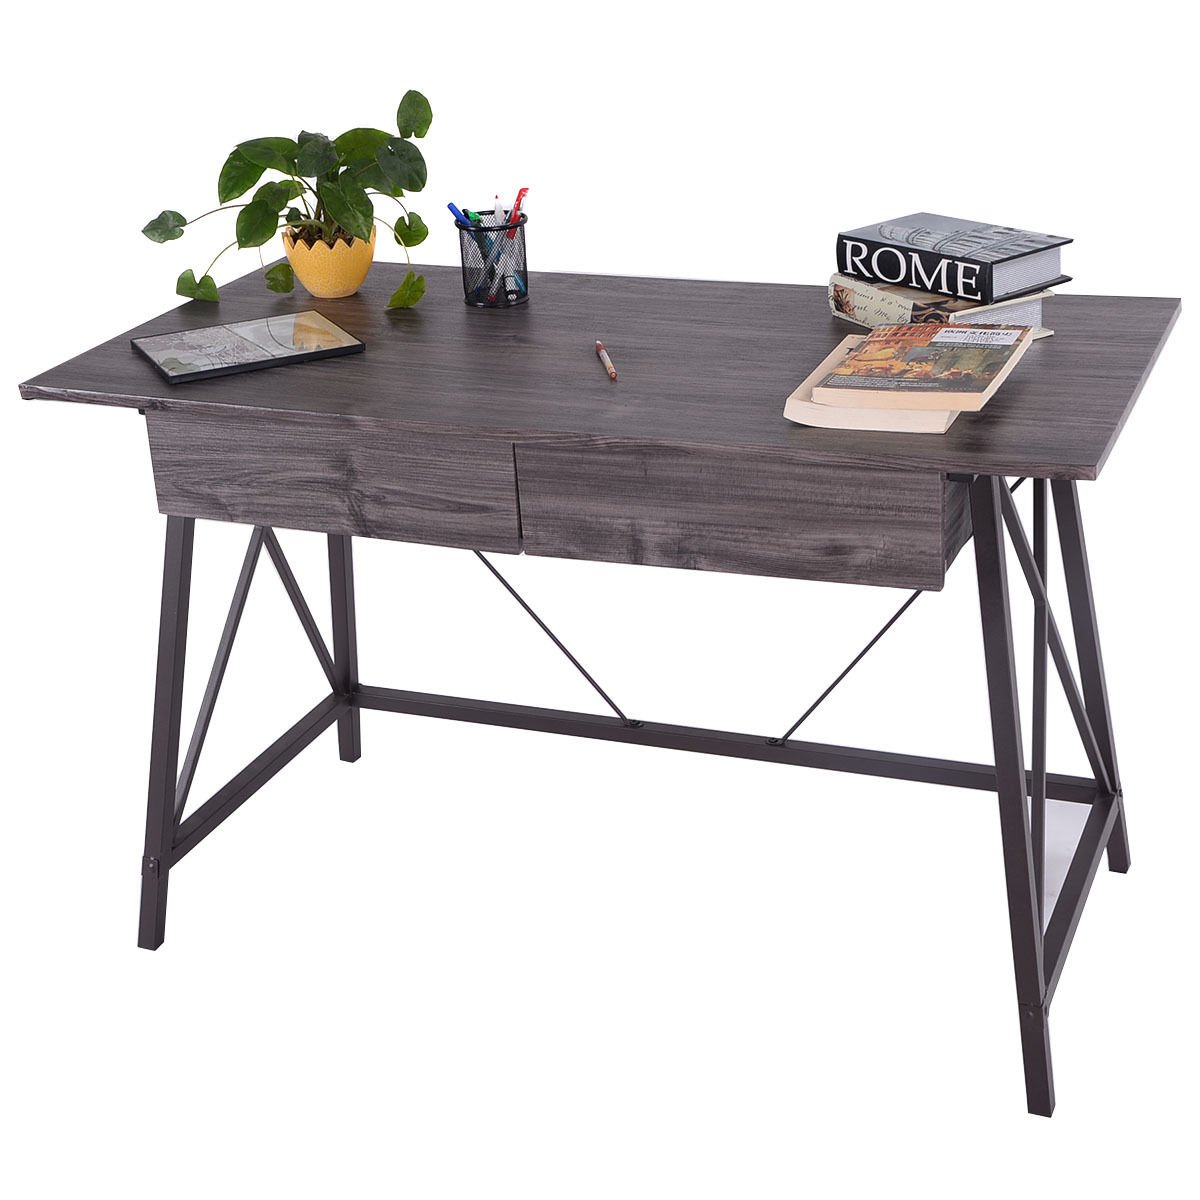 furniture for computers at home. Amazon.com: Wood Writing Desk Computer Table With Drawers Home Office  Furniture Workstation: Kitchen \u0026 Dining Furniture For Computers At Home S